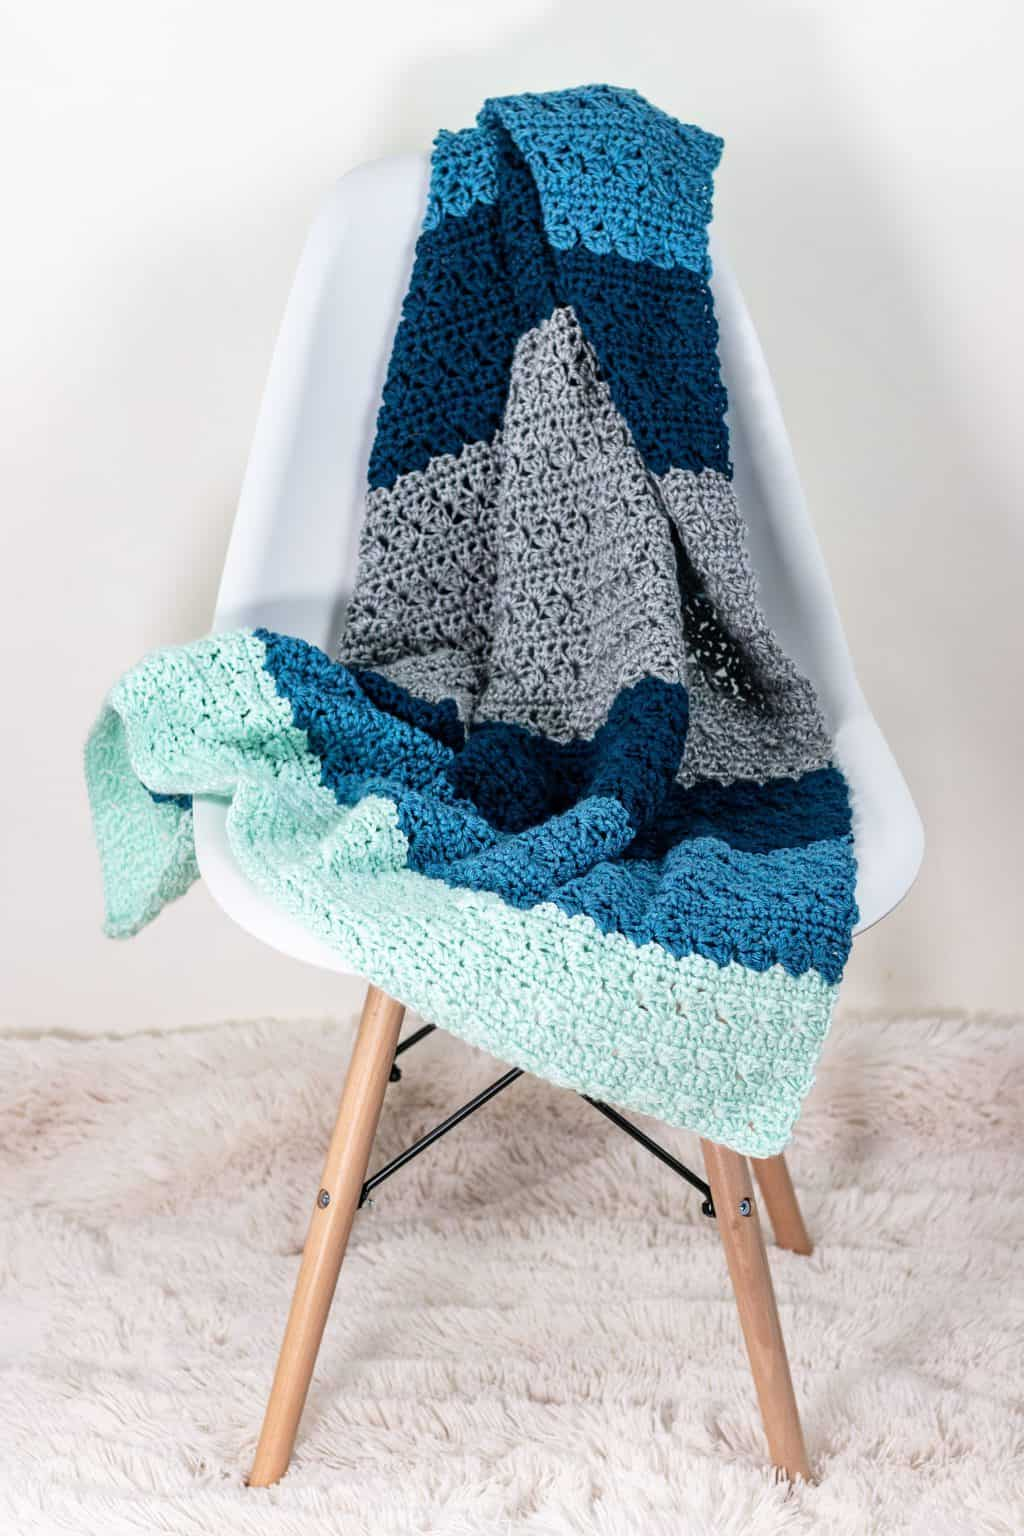 Simple Stitch Crochet Baby Blanket Pattern